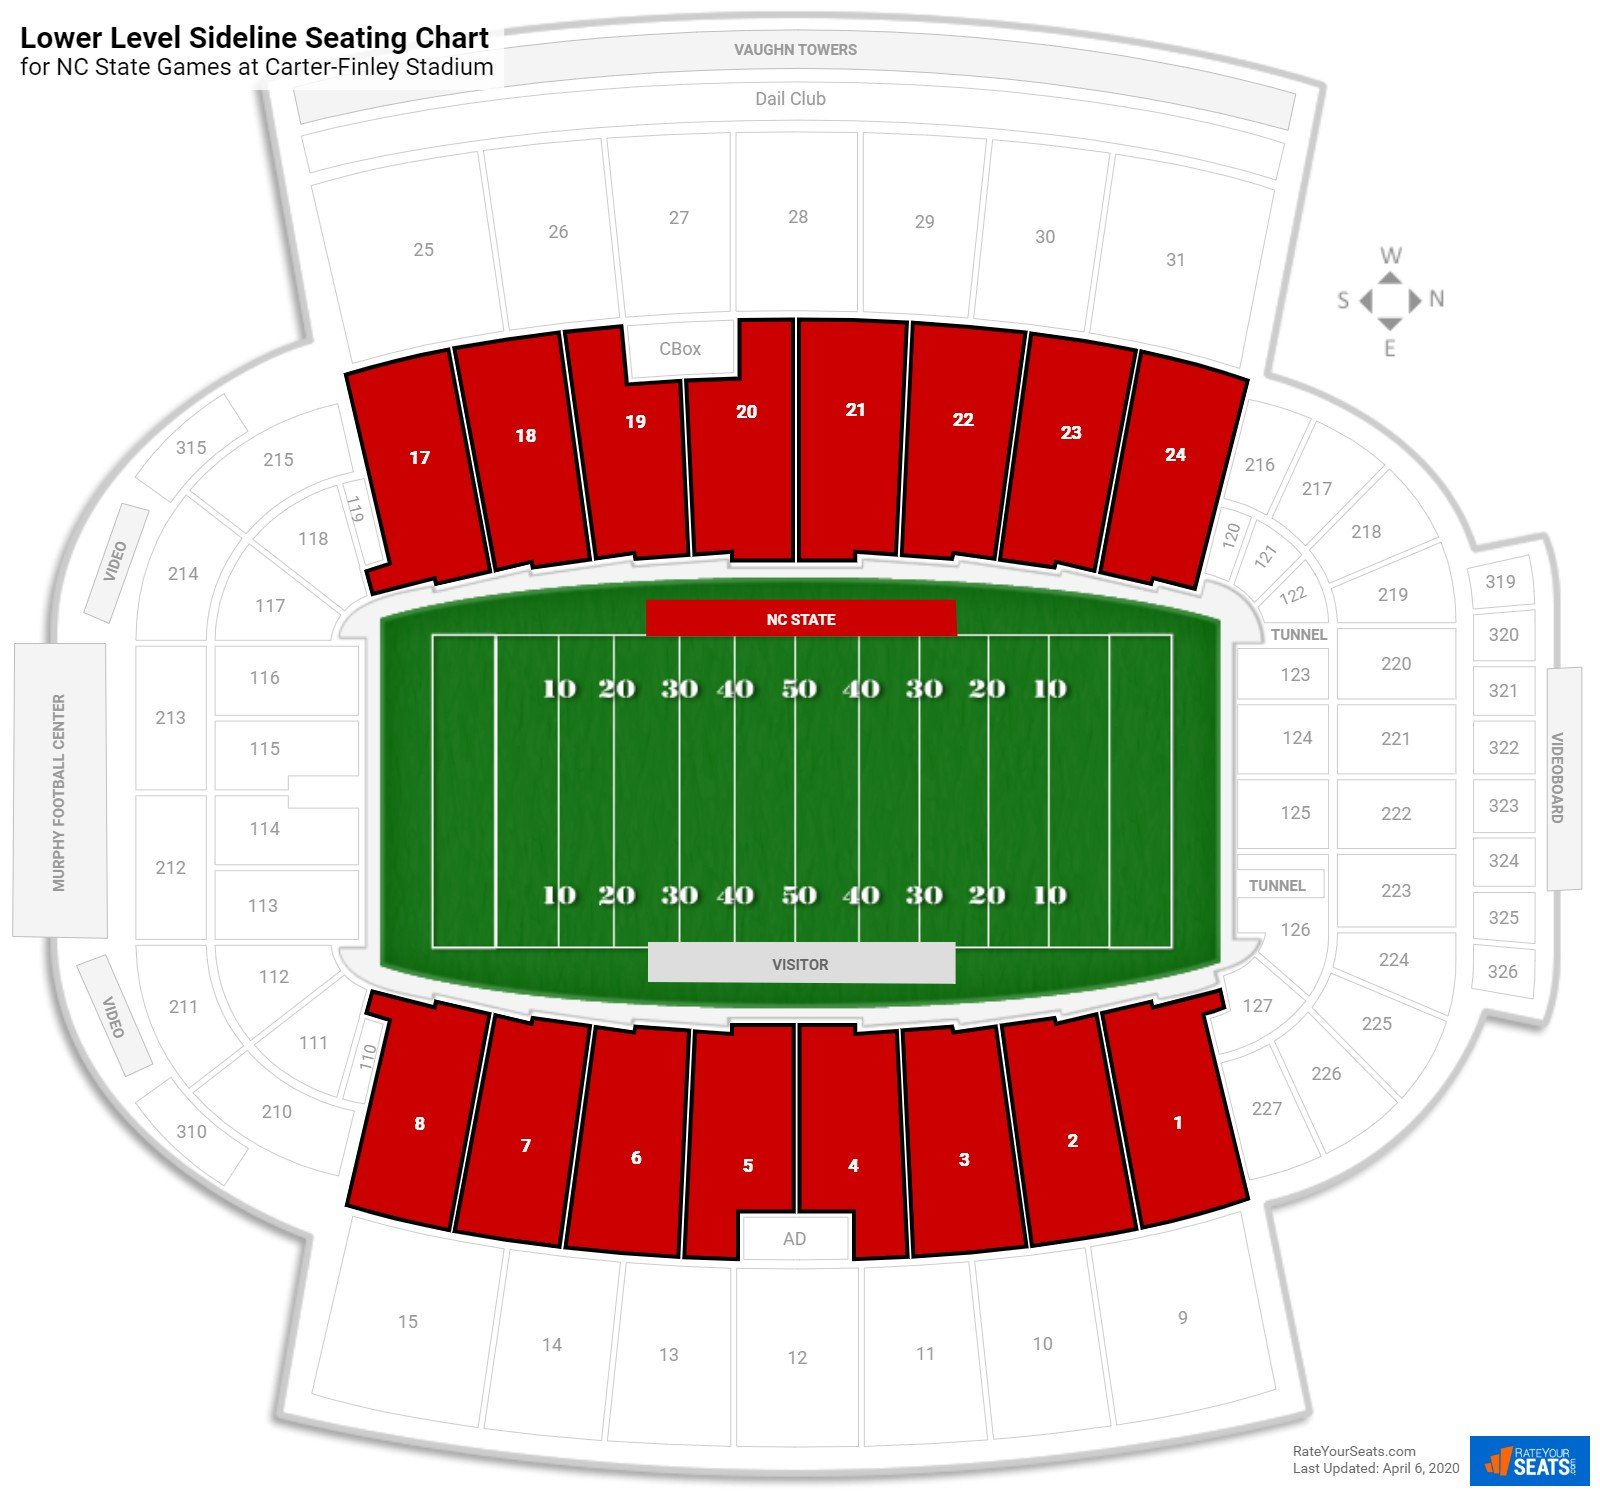 Carter-Finley Stadium Lower Level Sideline seating chart